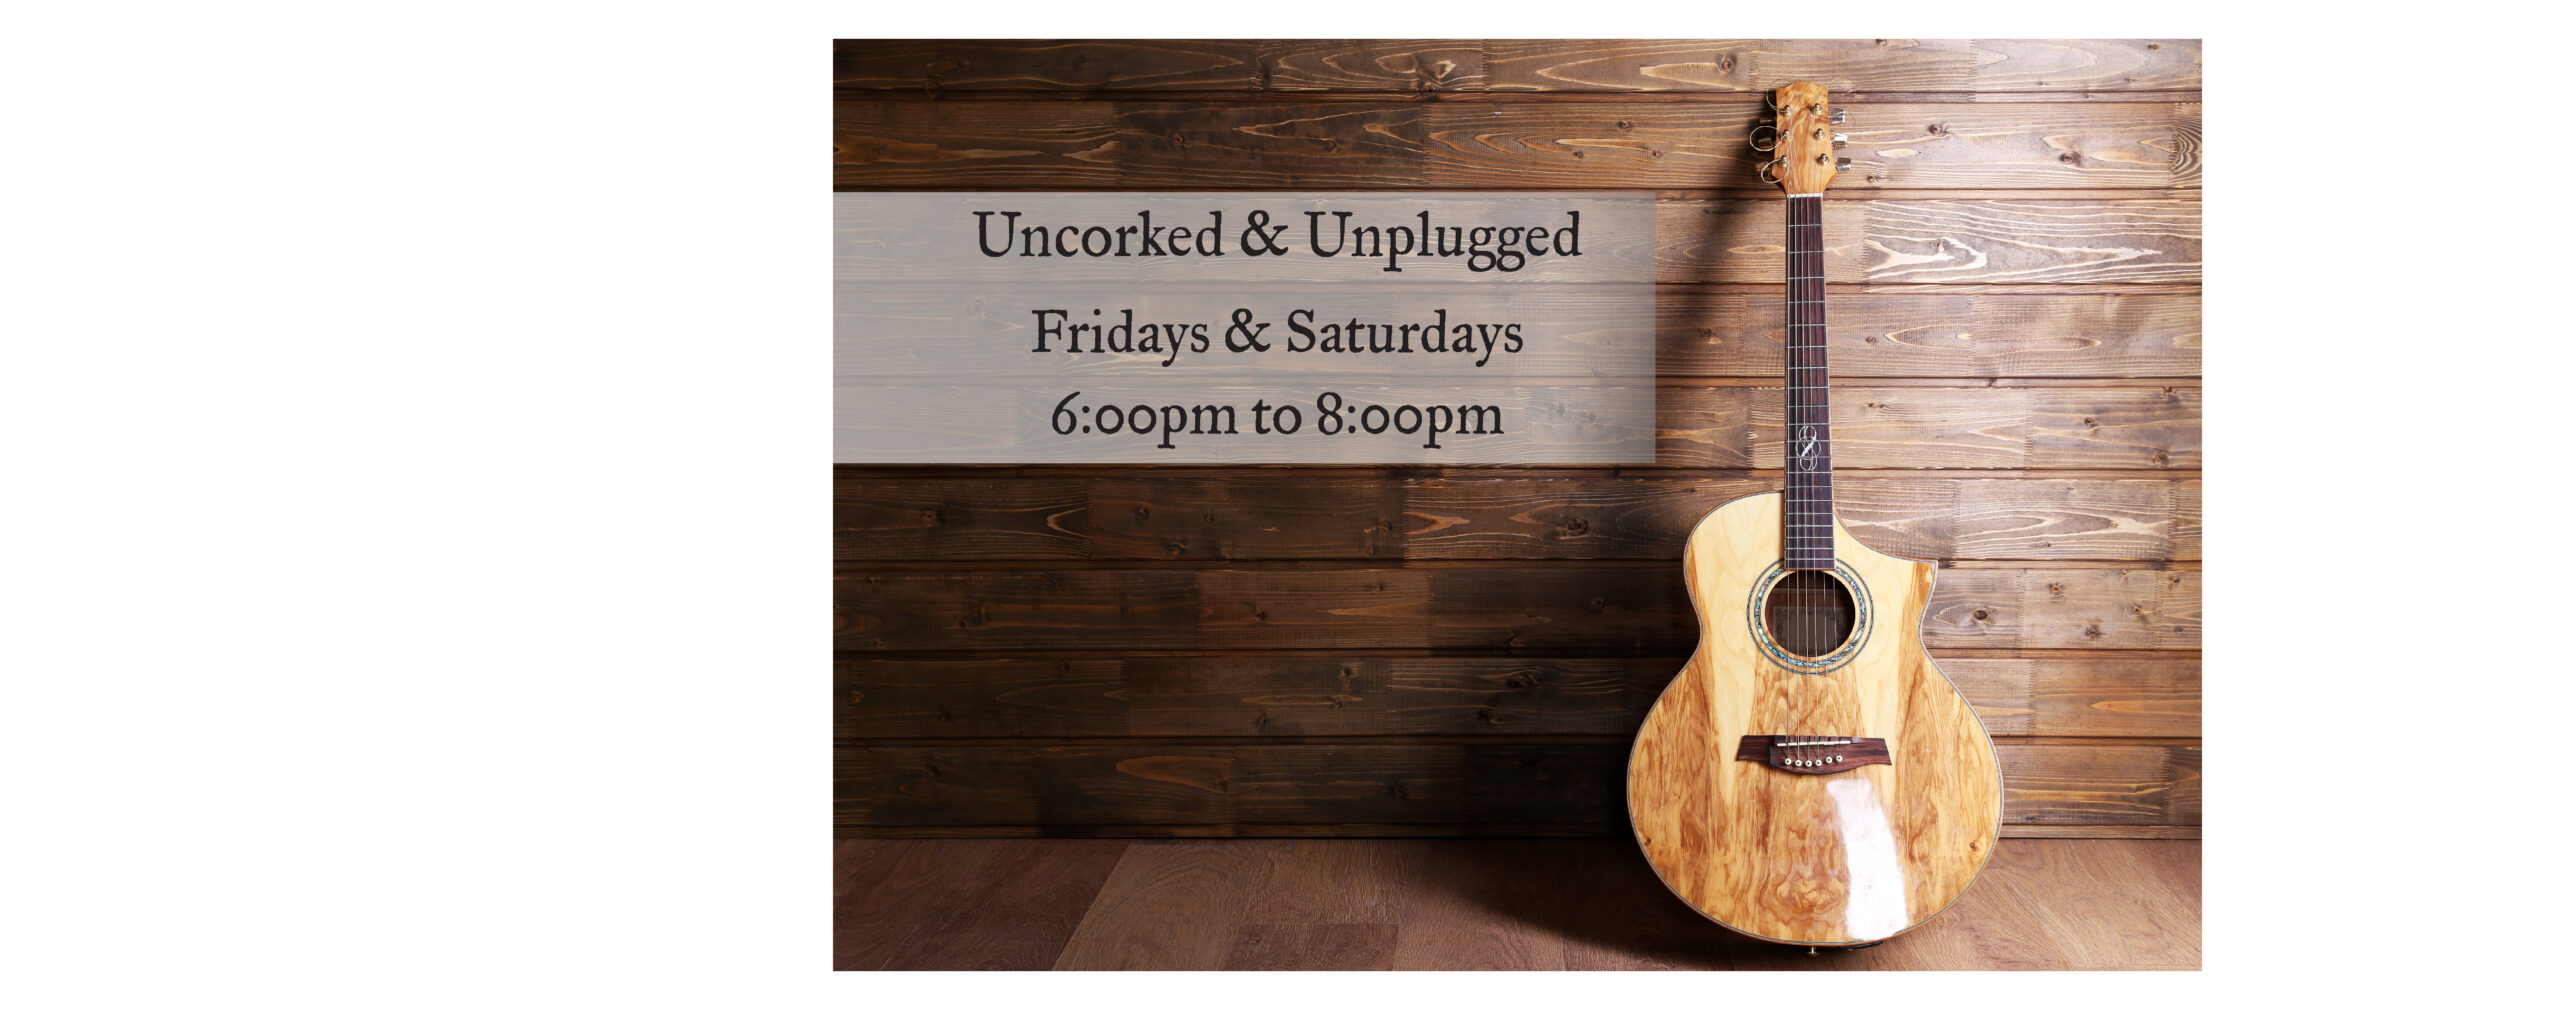 Live Music Fridays & Saturdays from 6pm to 8pm at Blend in Bozeman